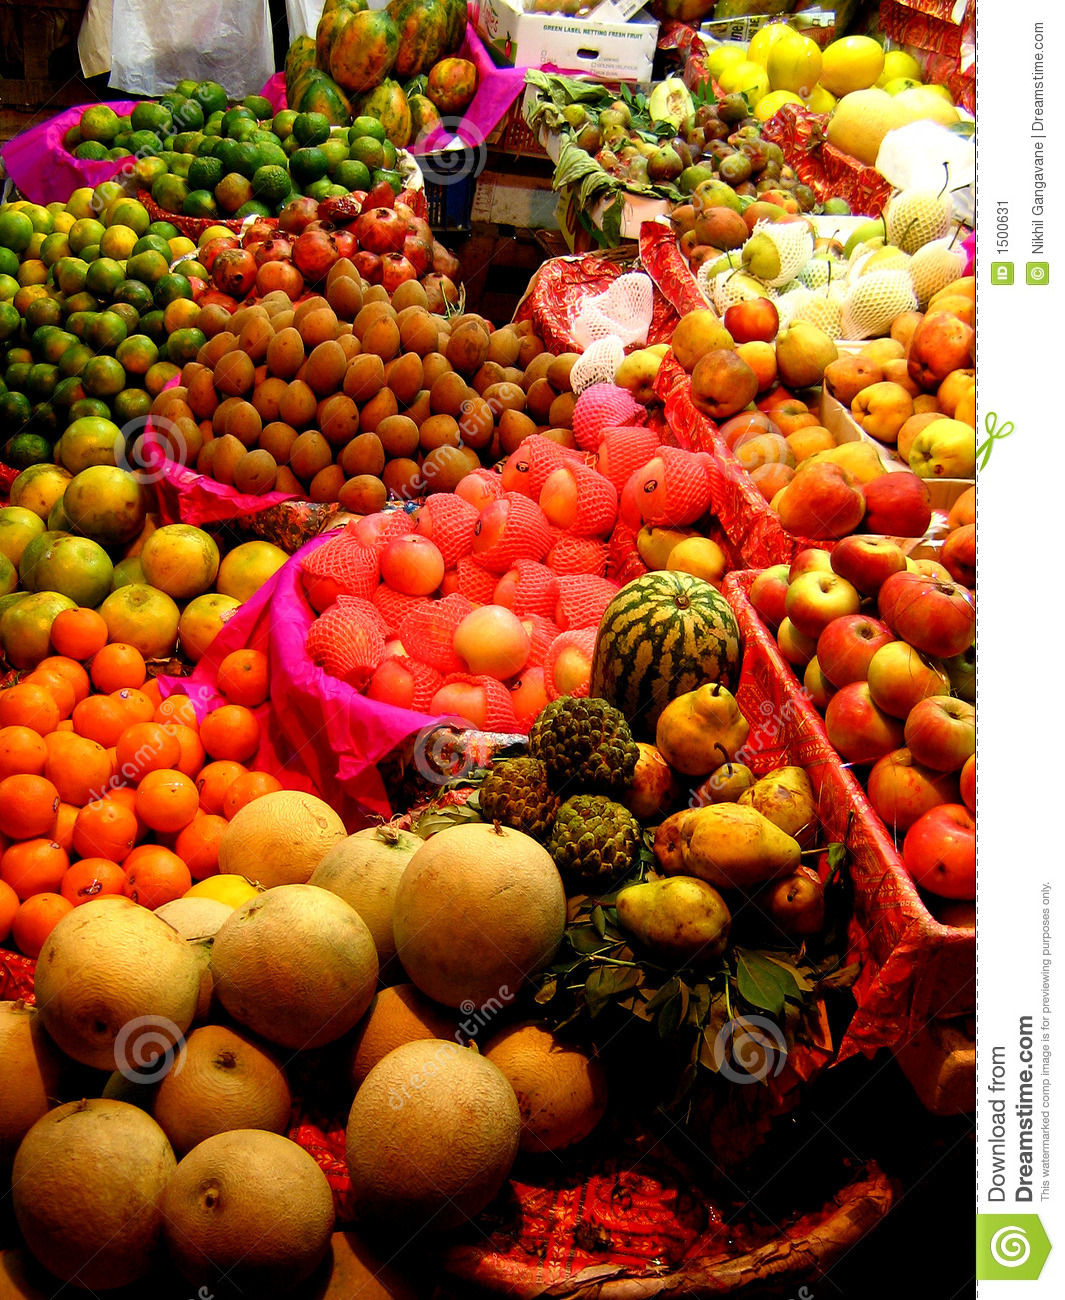 fruit stall in an Indian Market Indian Market Stall